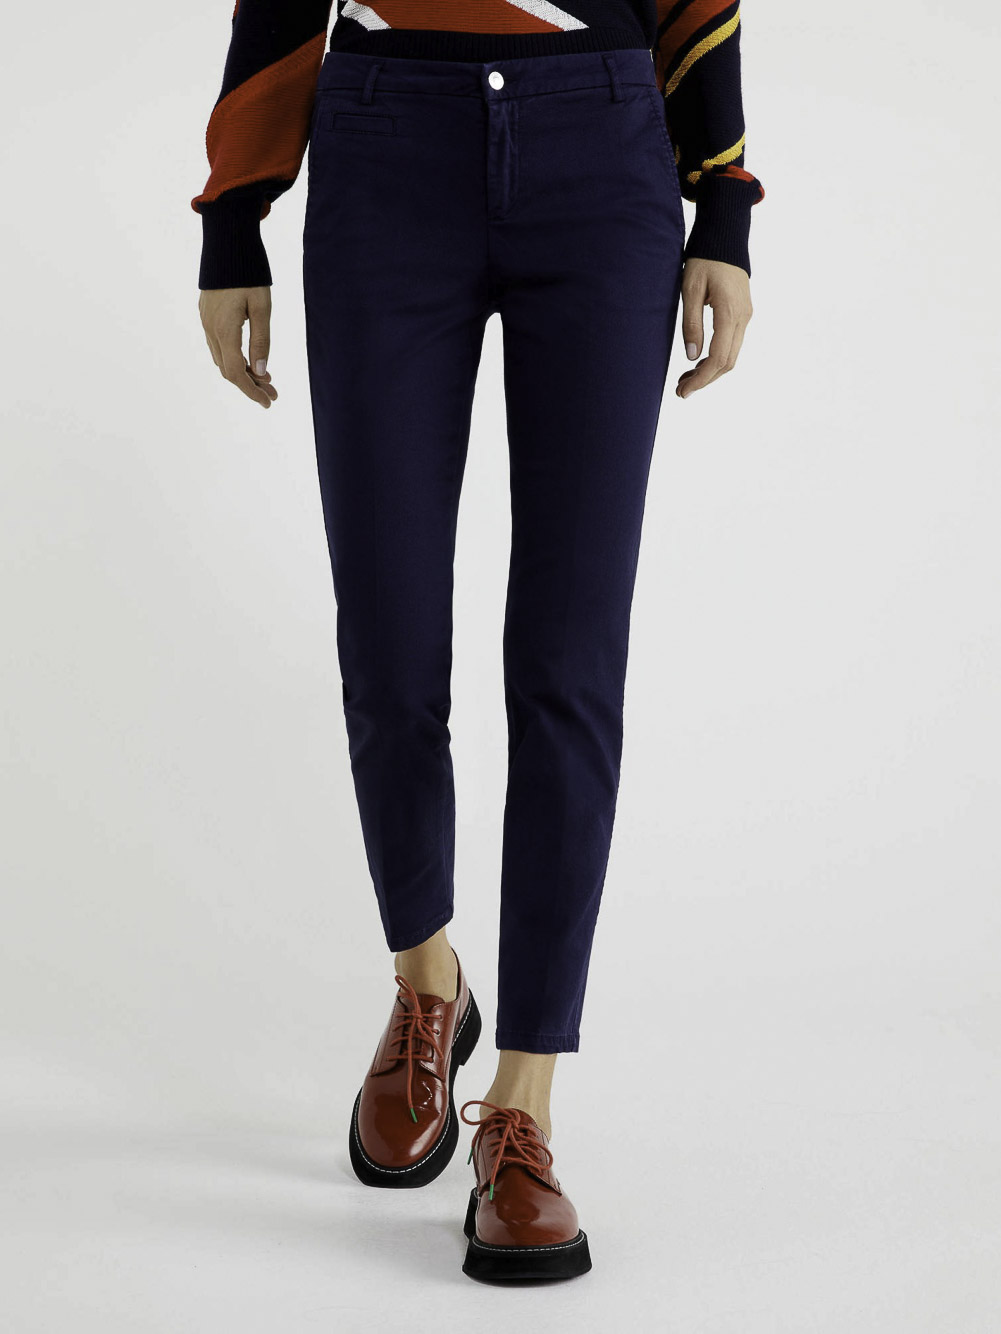 BENETTON Παντελόνι Chino 4GD7558S3 20A616